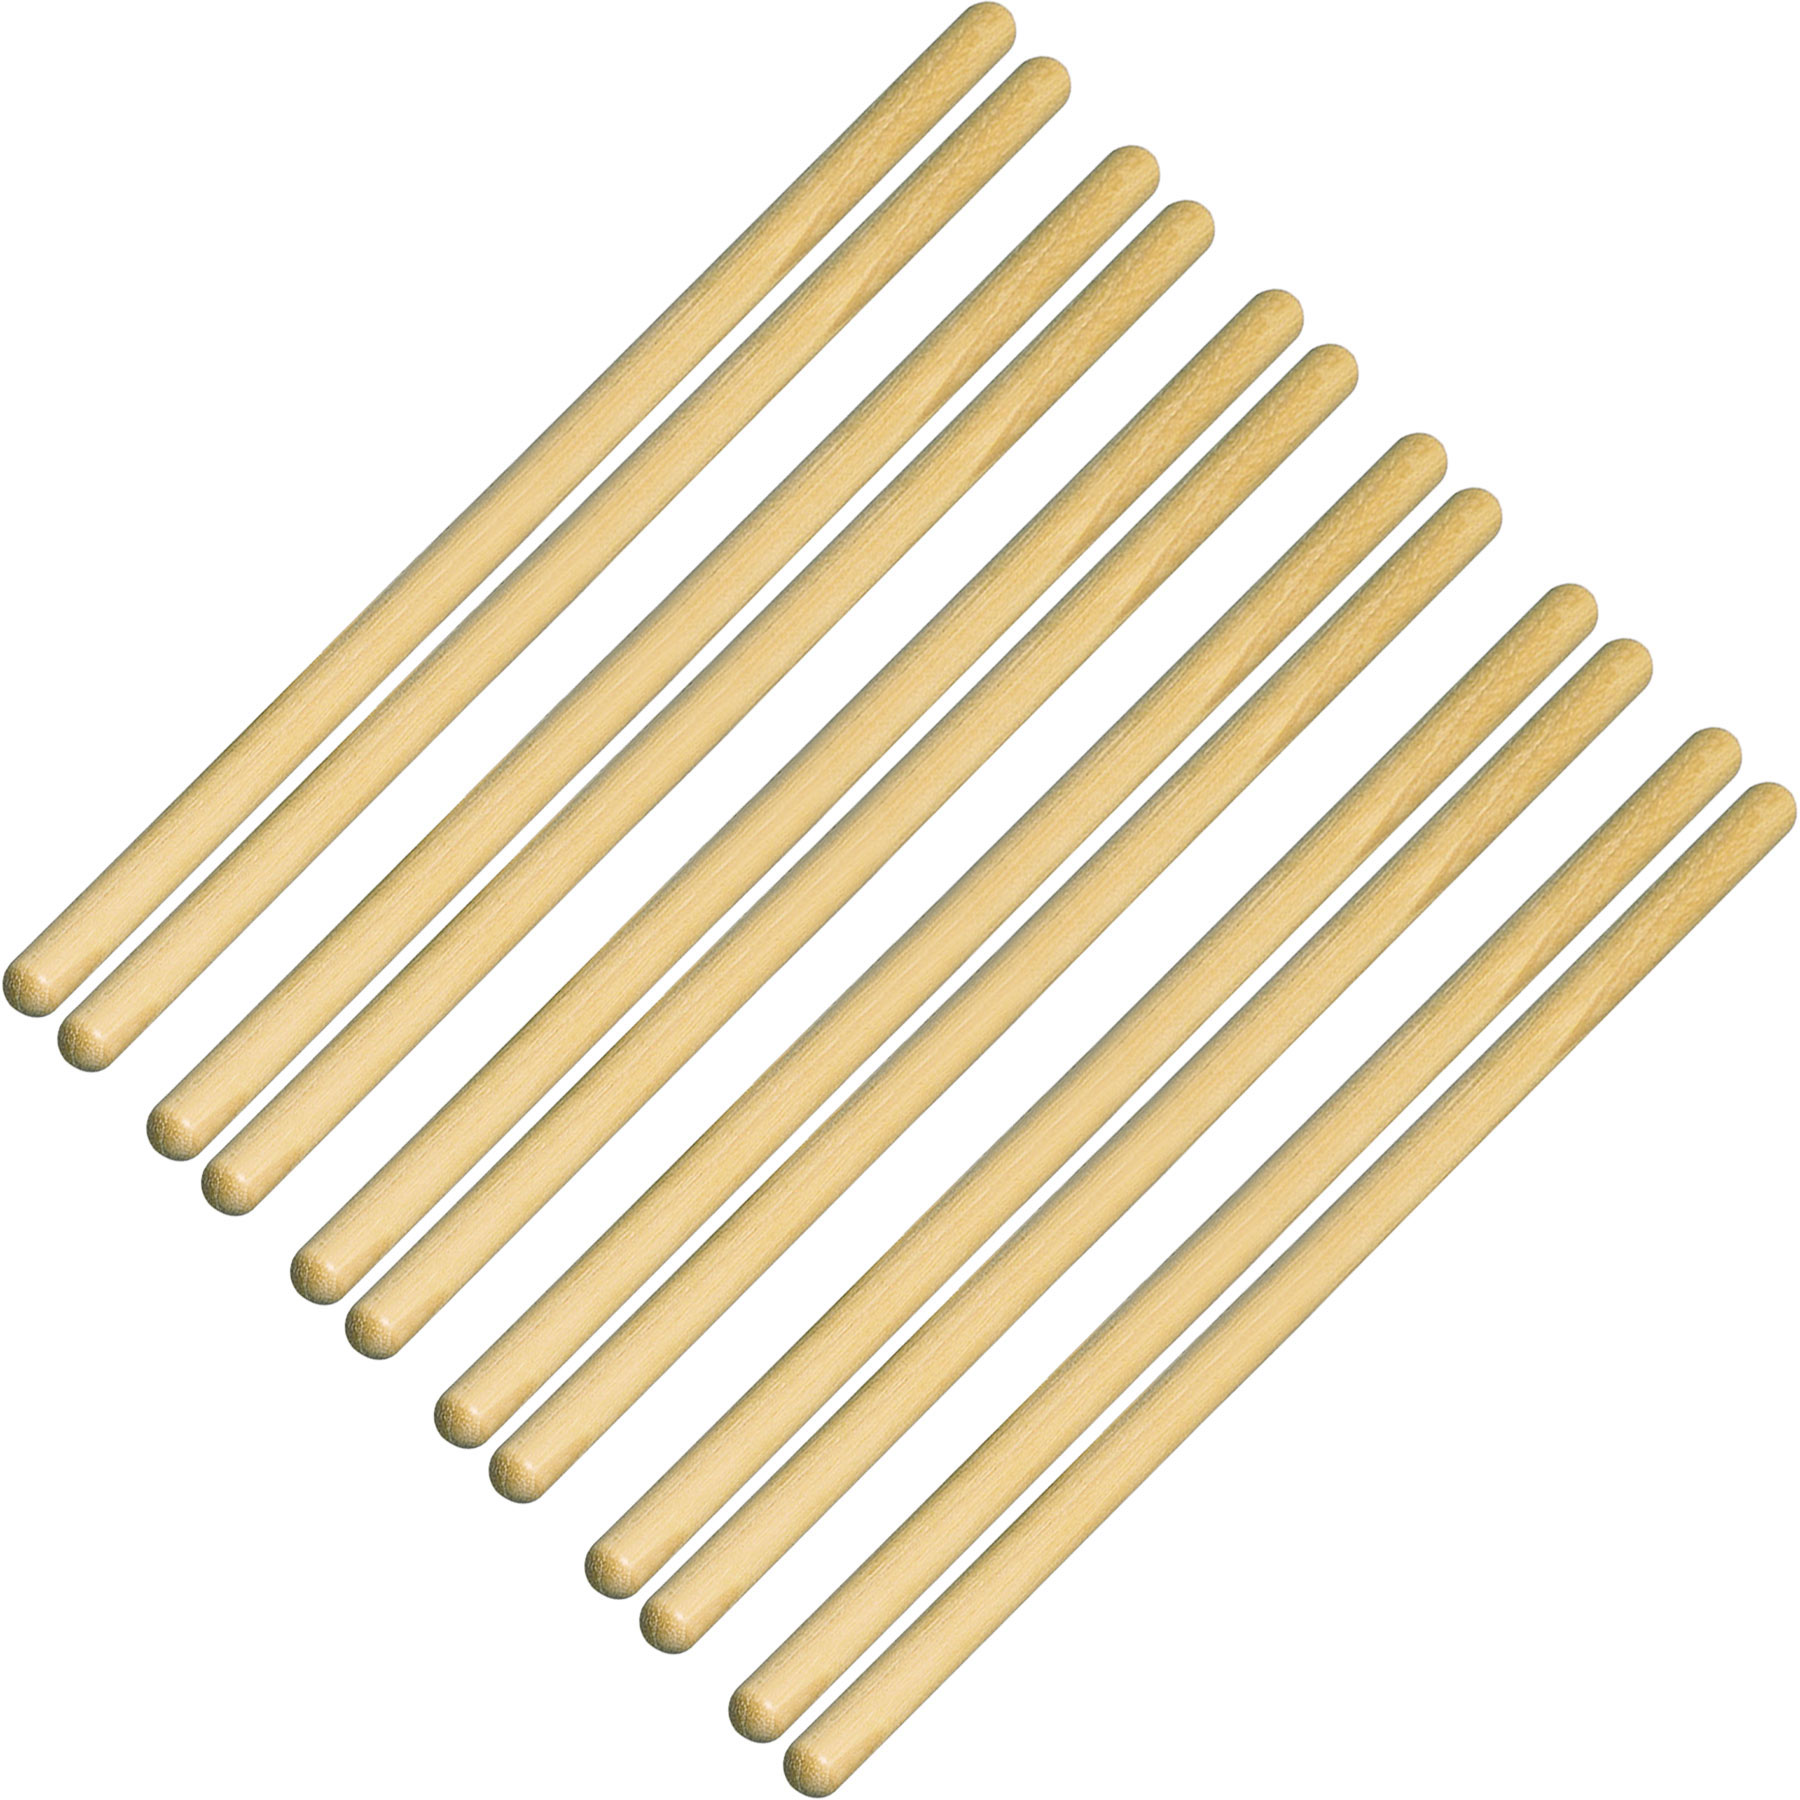 "LP 3/8"" Hickory Timbale Sticks (6 Pairs)"